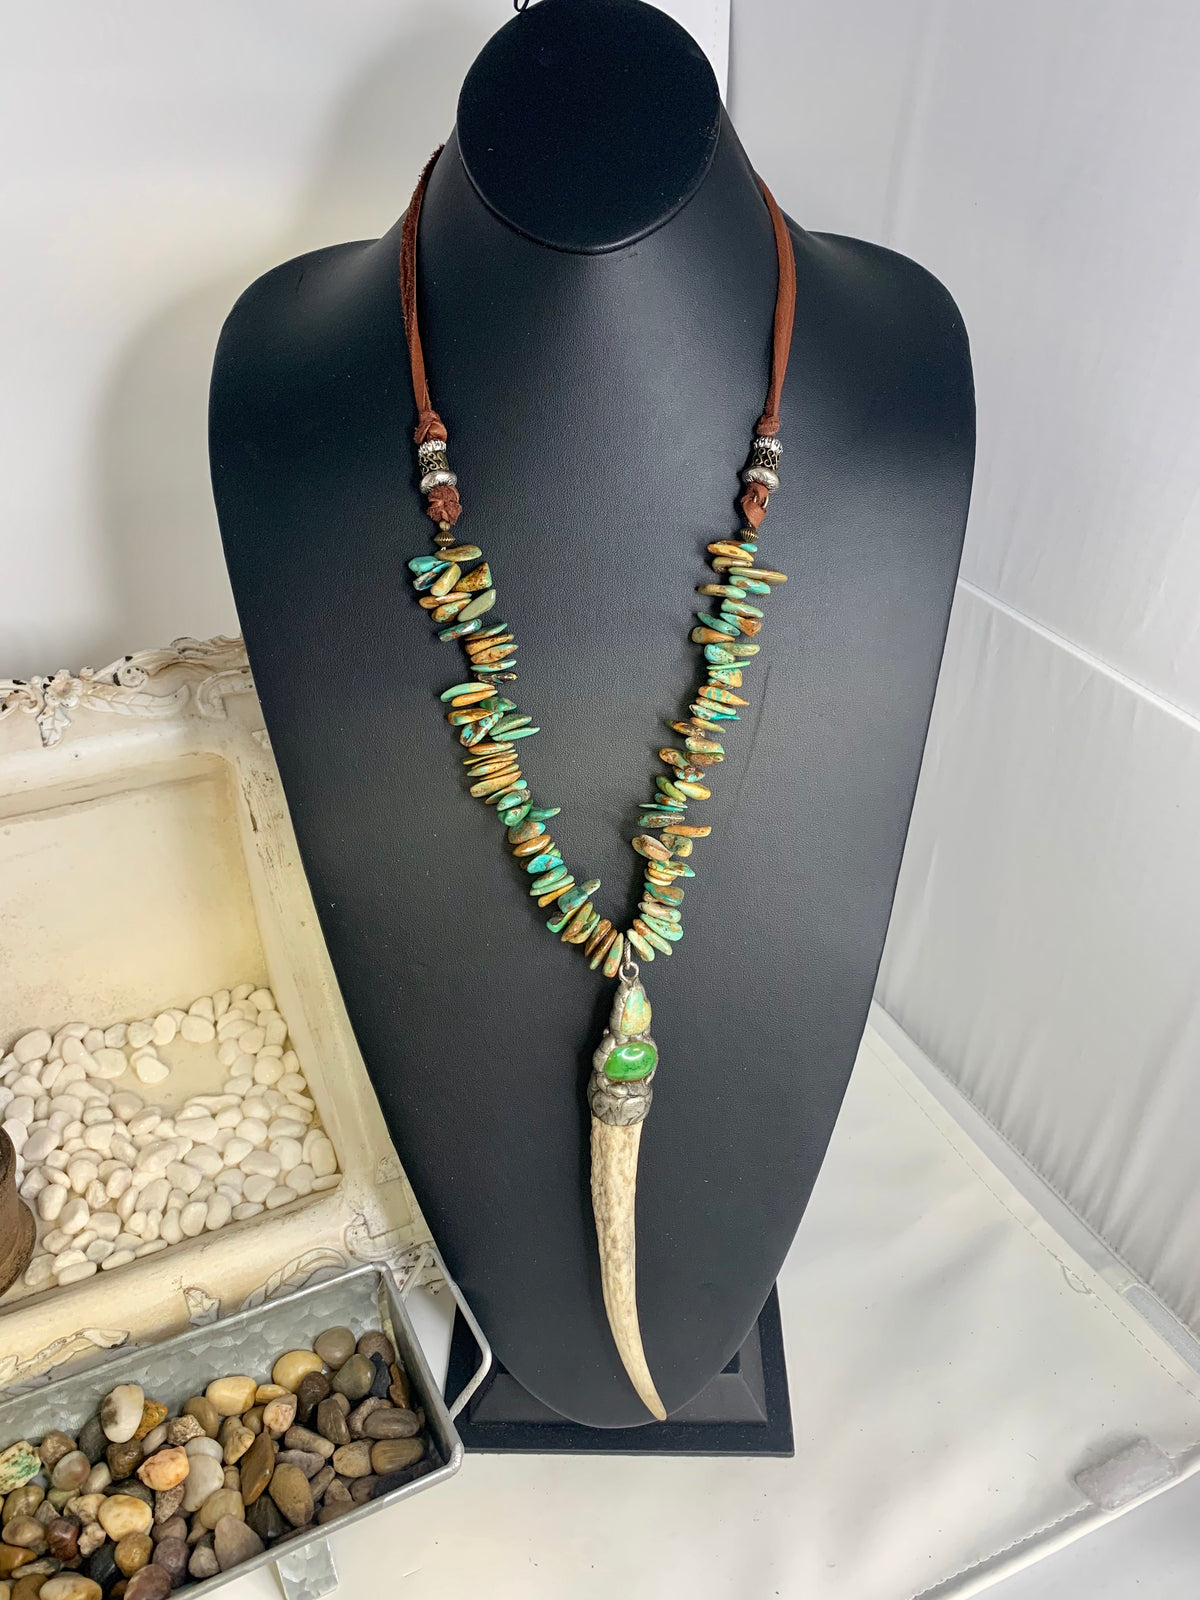 Sabertooth Necklace with Green Turquoise Accent